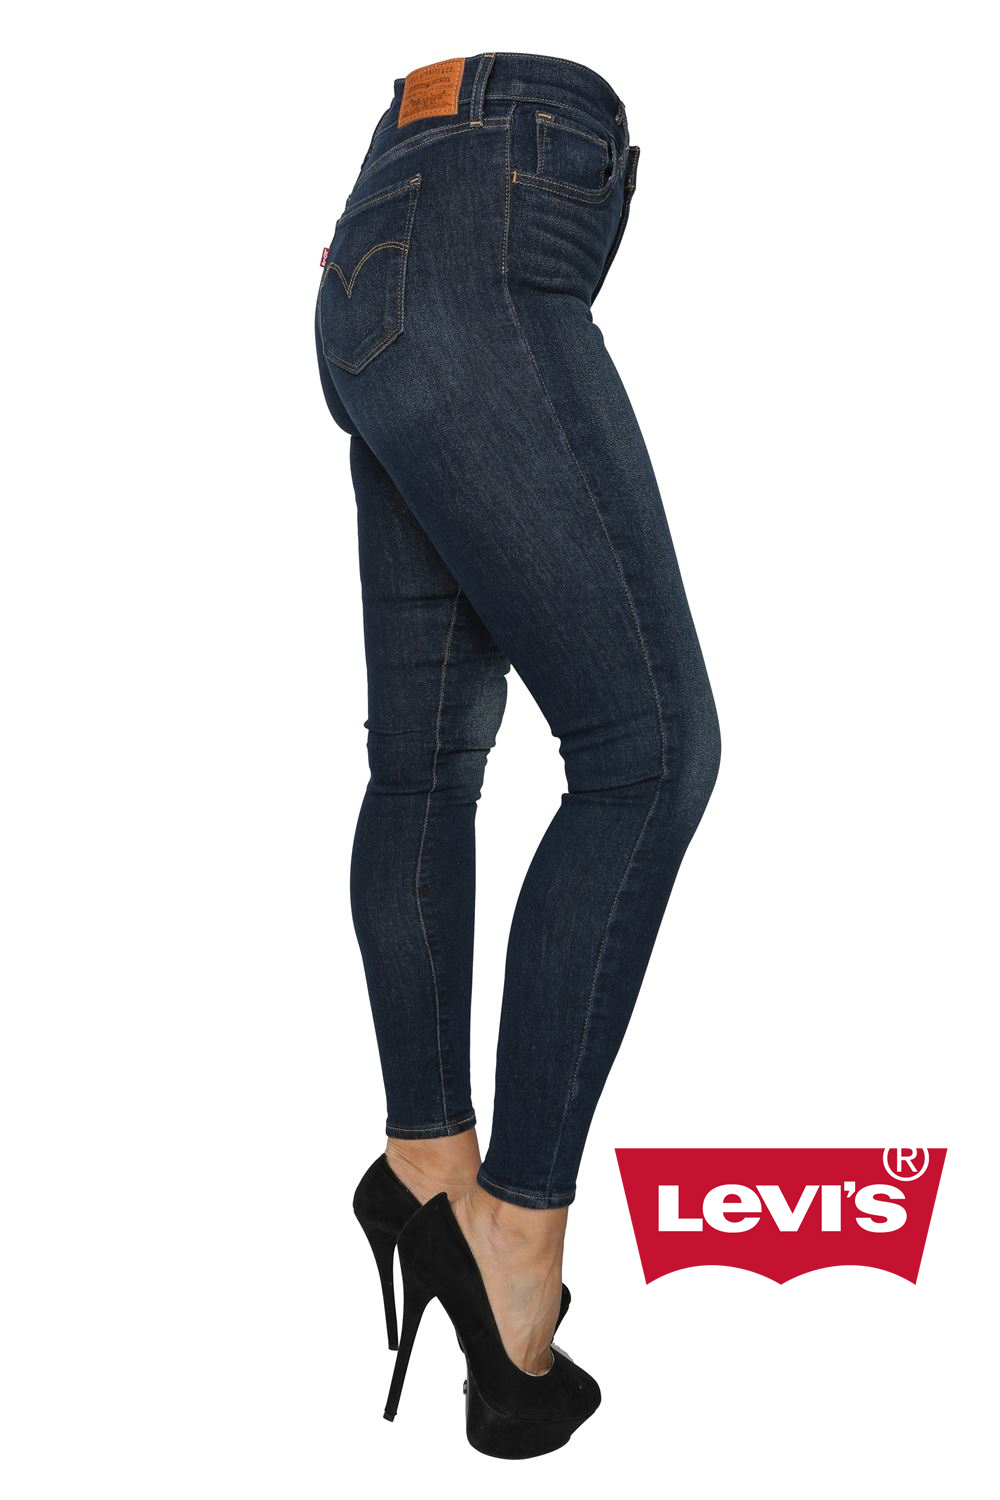 levis 720 high rise super skinny jeans